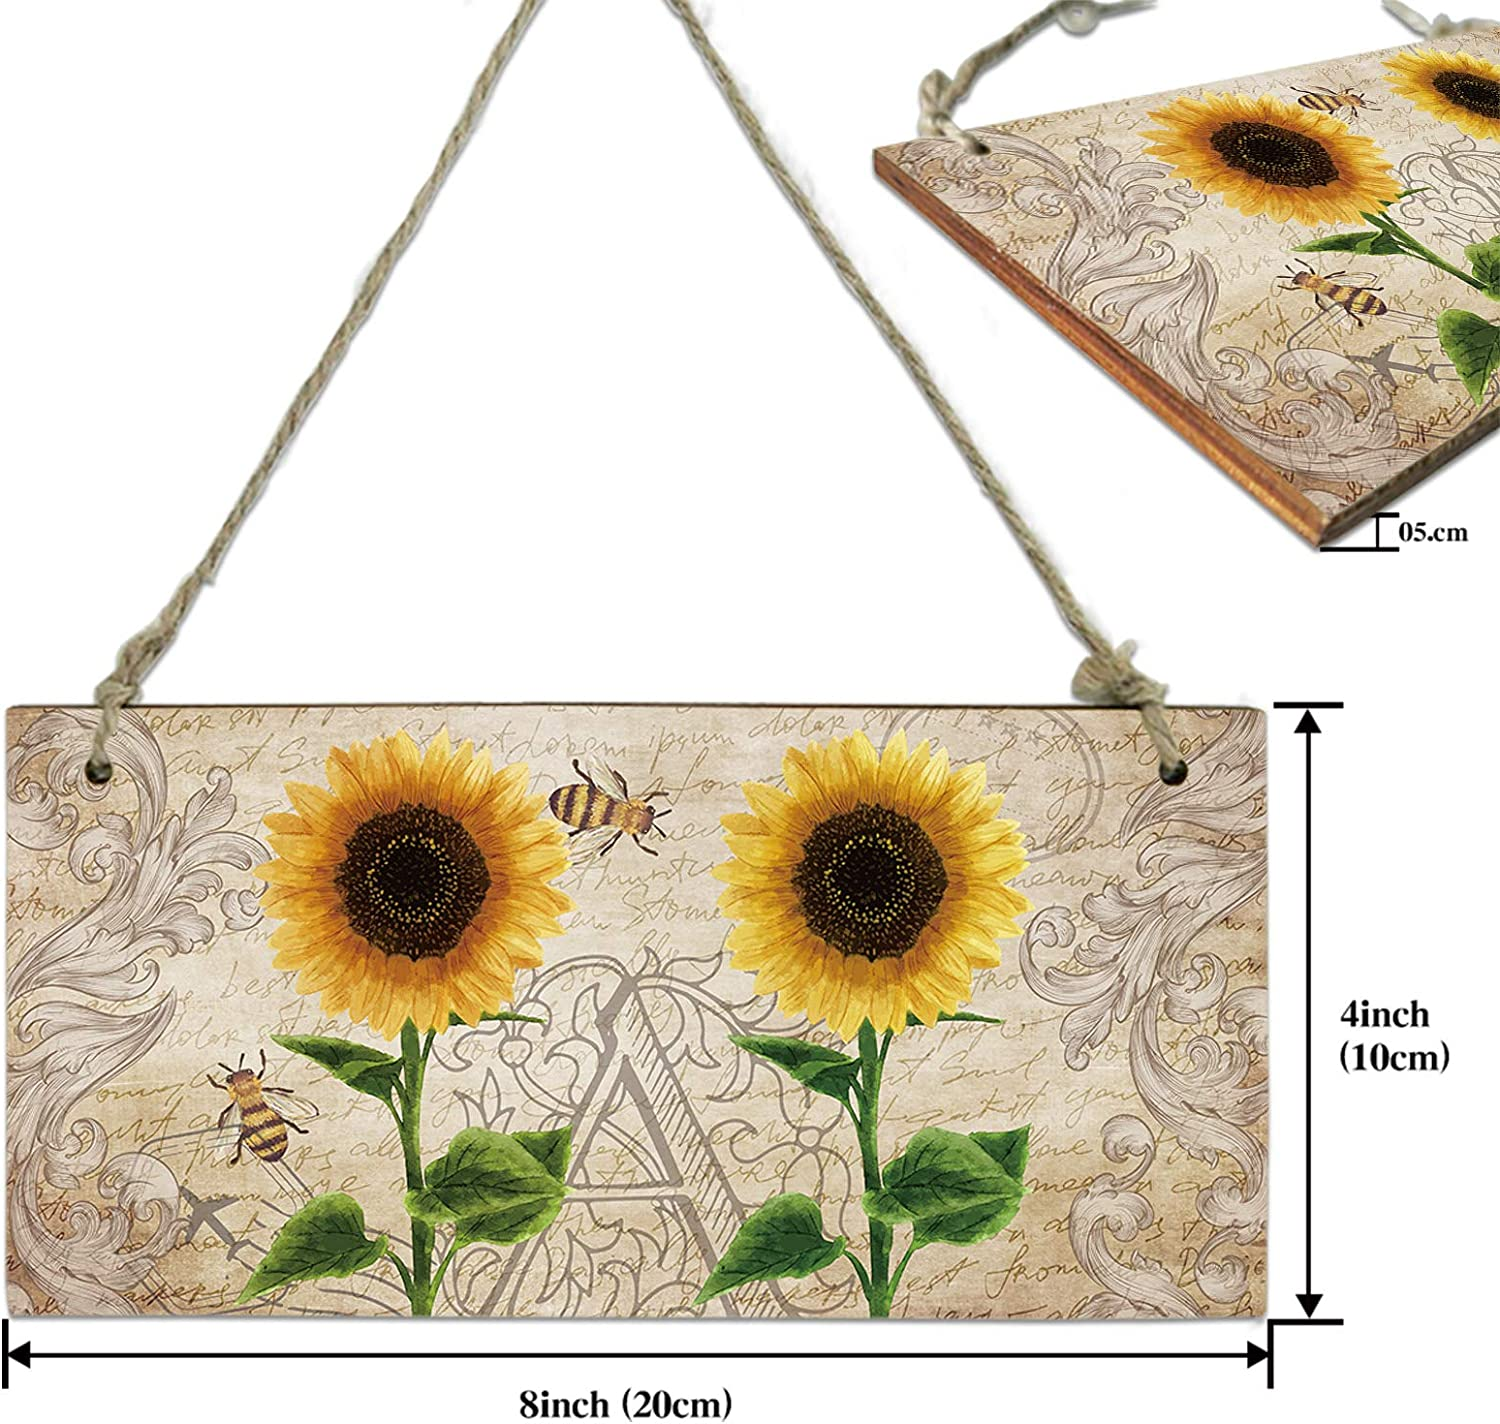 DIY Welcome Sign Sunflower Baby Shower Rustic Sunflower Baby Shower Welcome Sign Template Country Vintage Editable Printable Decor Signs